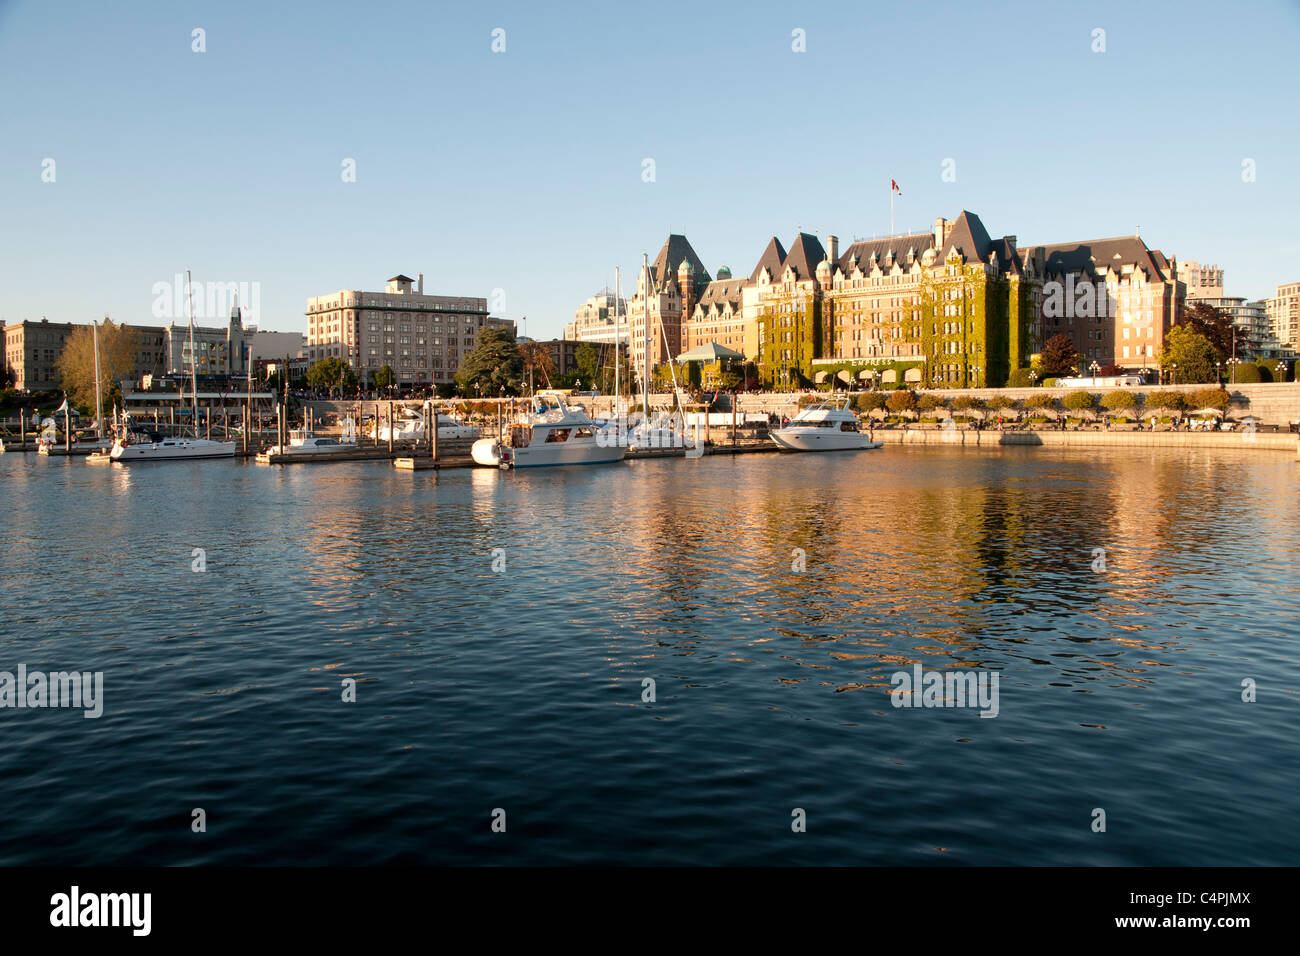 Inner Harbour and Empress Hotel. Victoria, Vancouver Island, British Columbia, Canada. - Stock Image